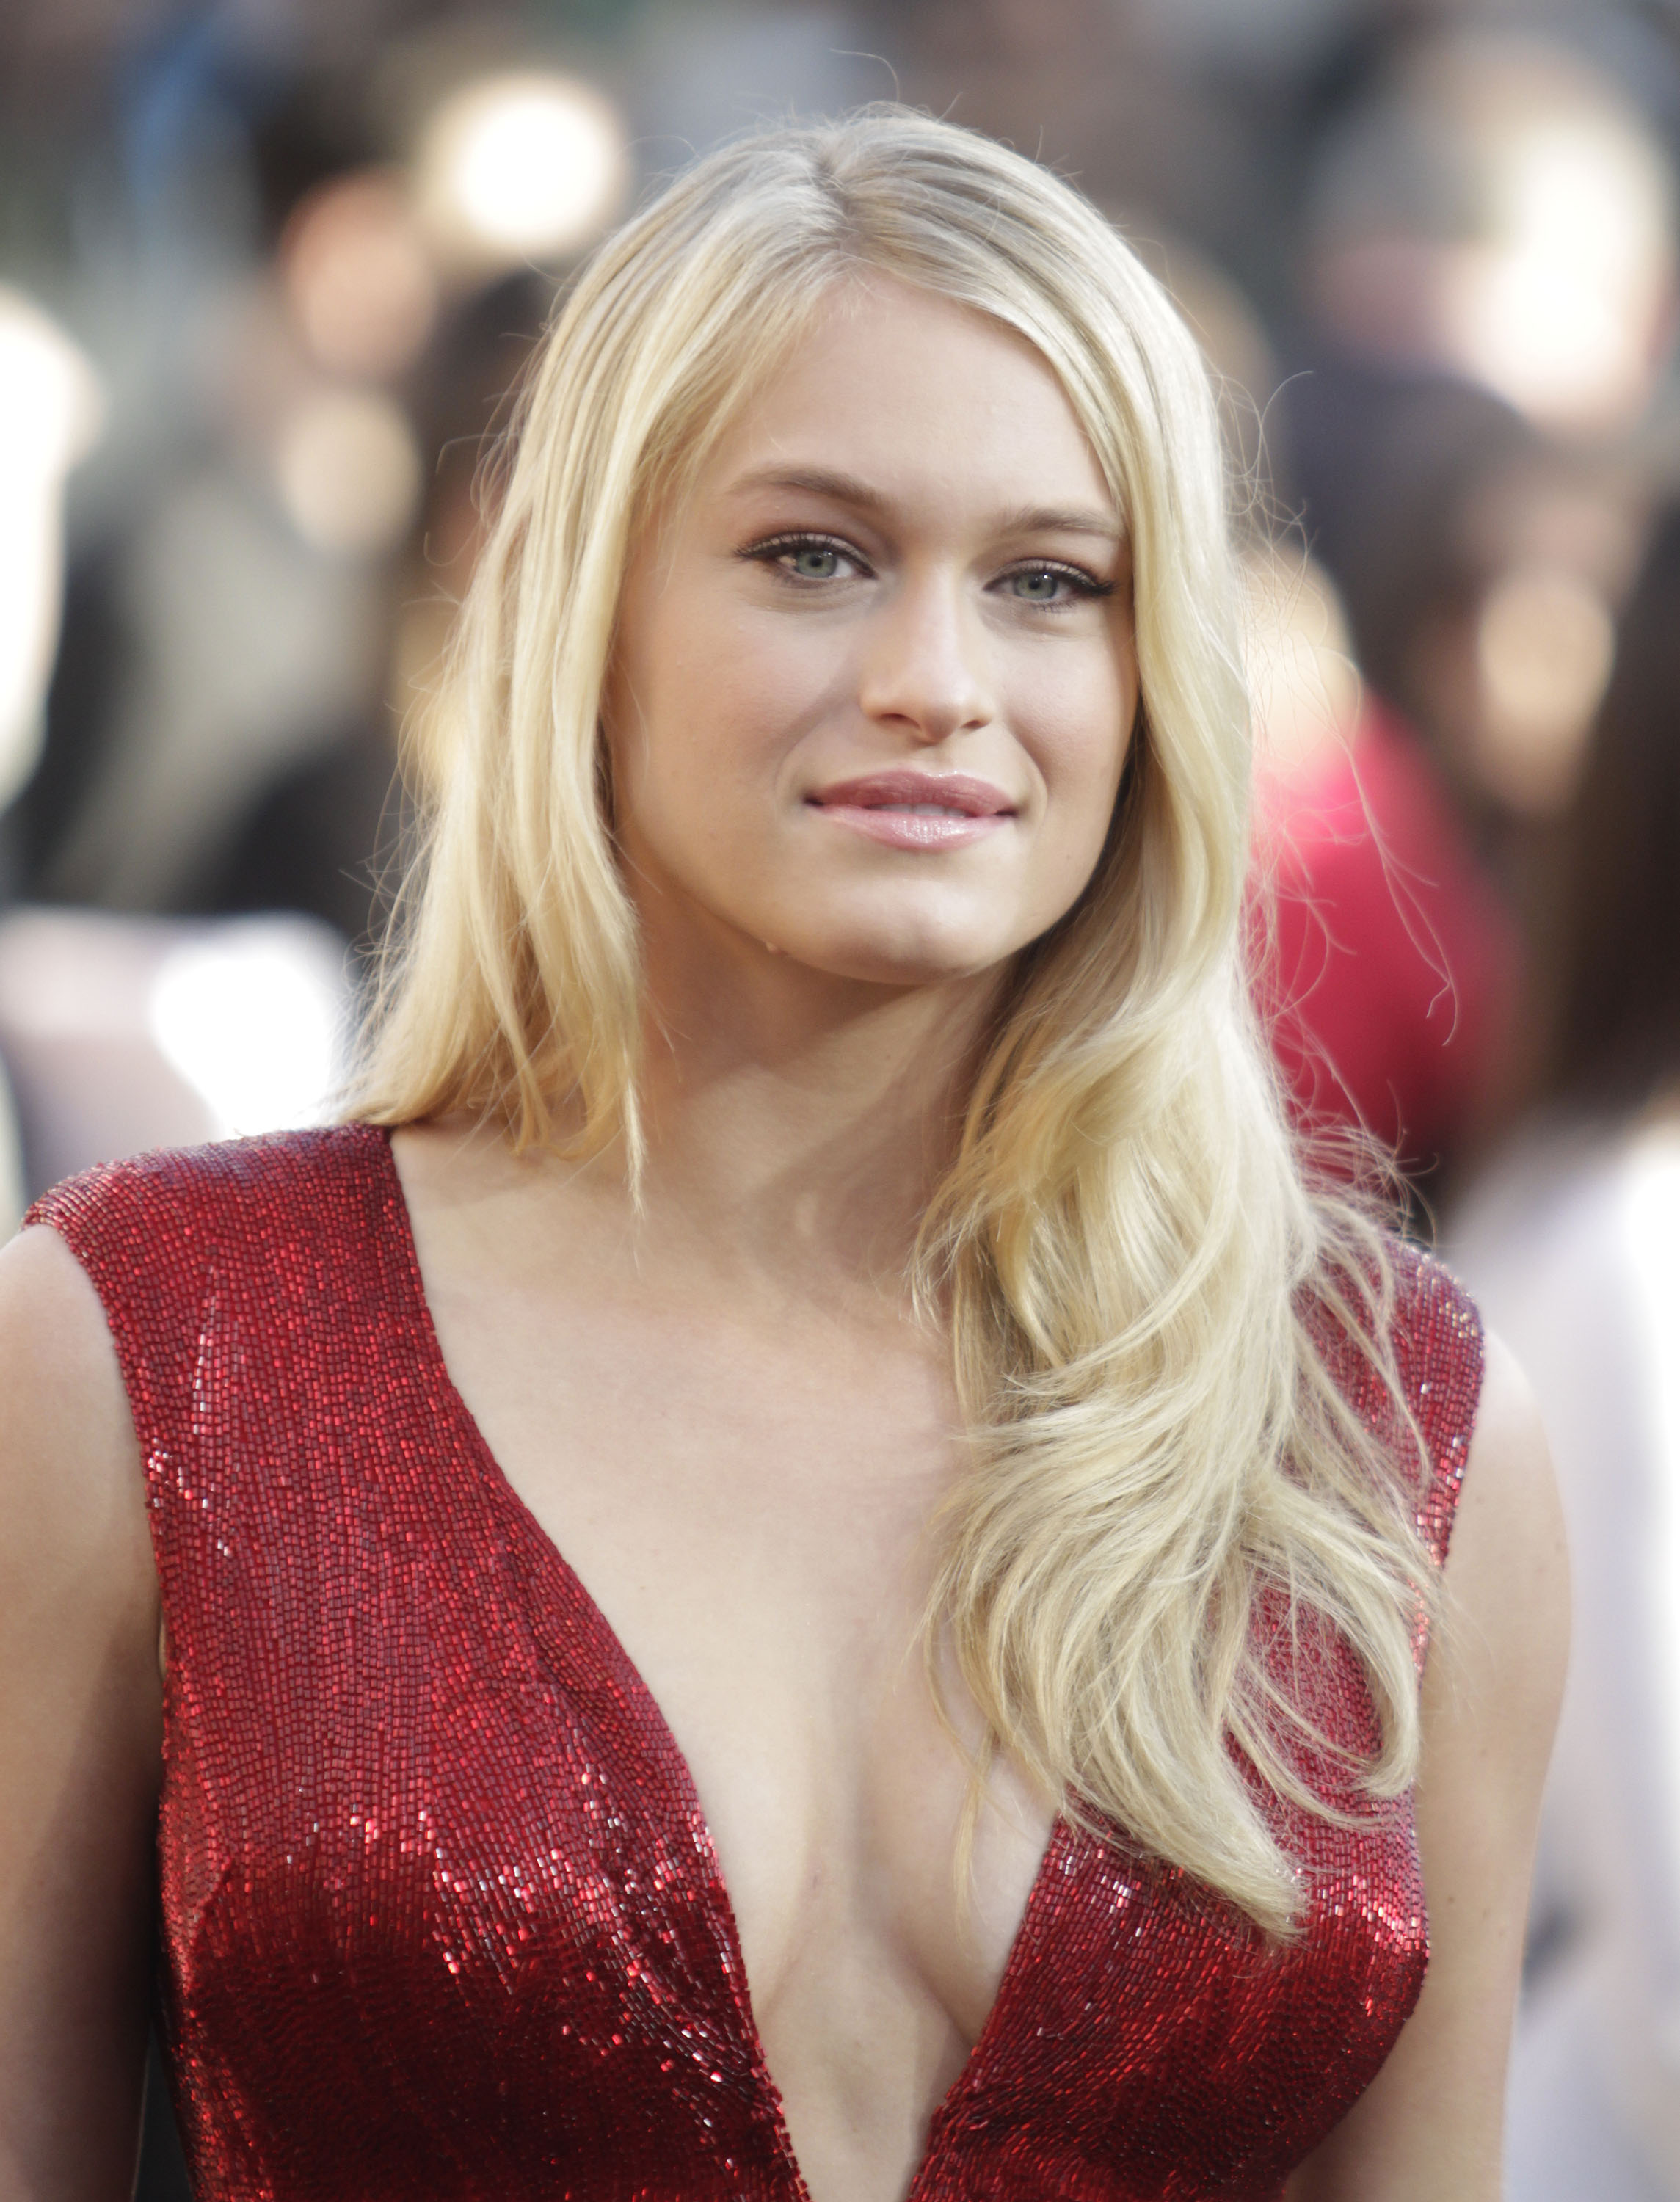 Leven Rambin earned a  million dollar salary - leaving the net worth at 1 million in 2018